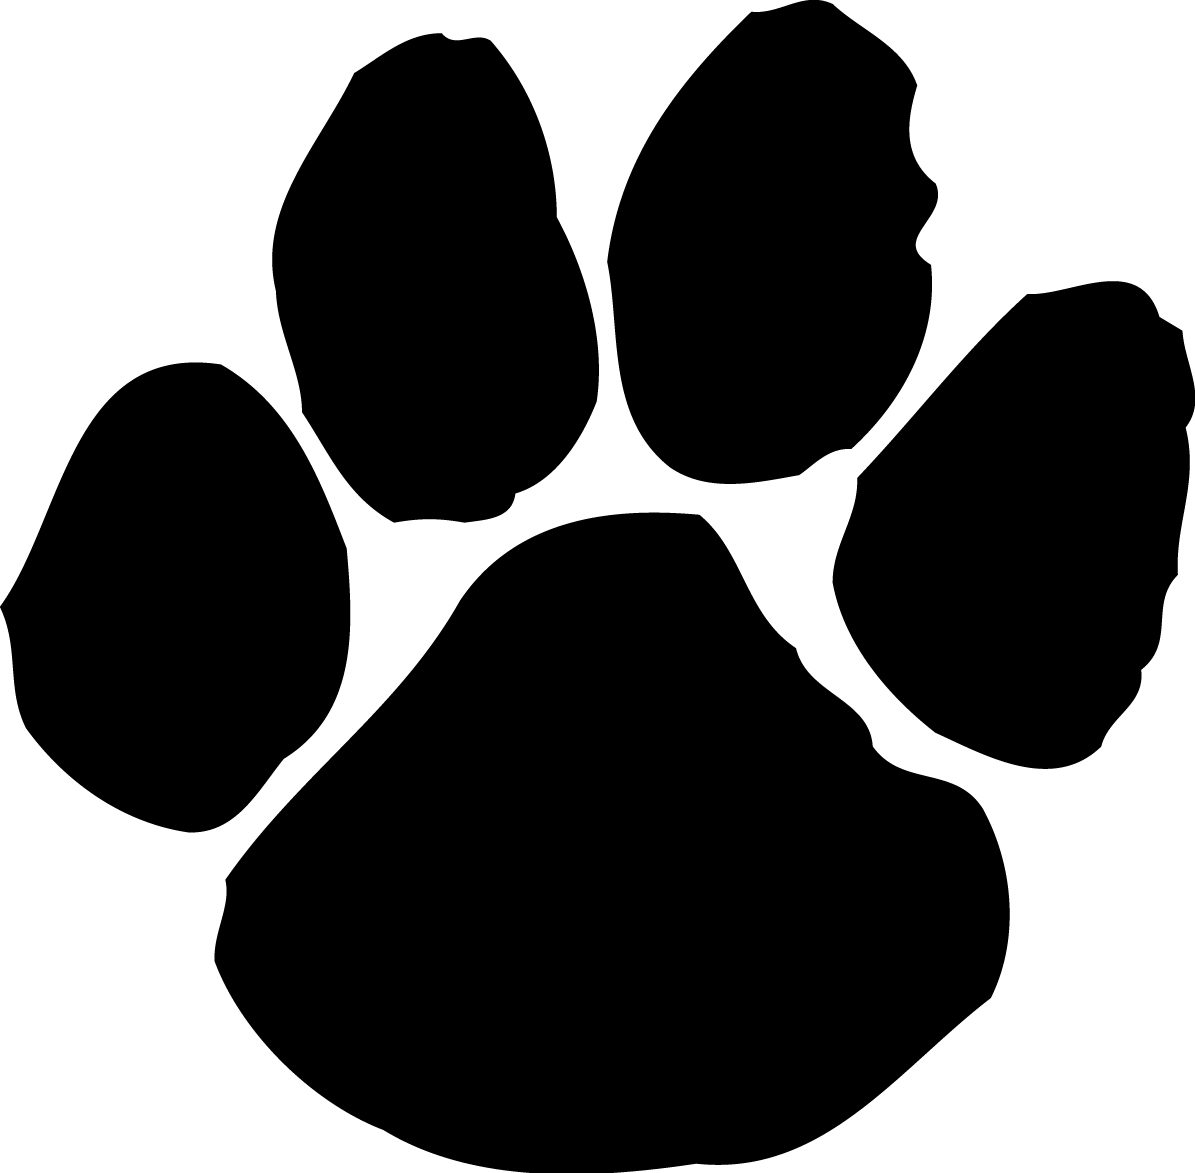 Clip Art Dog Paw Print - Clipart Library-Clip Art Dog Paw Print - Clipart library-1